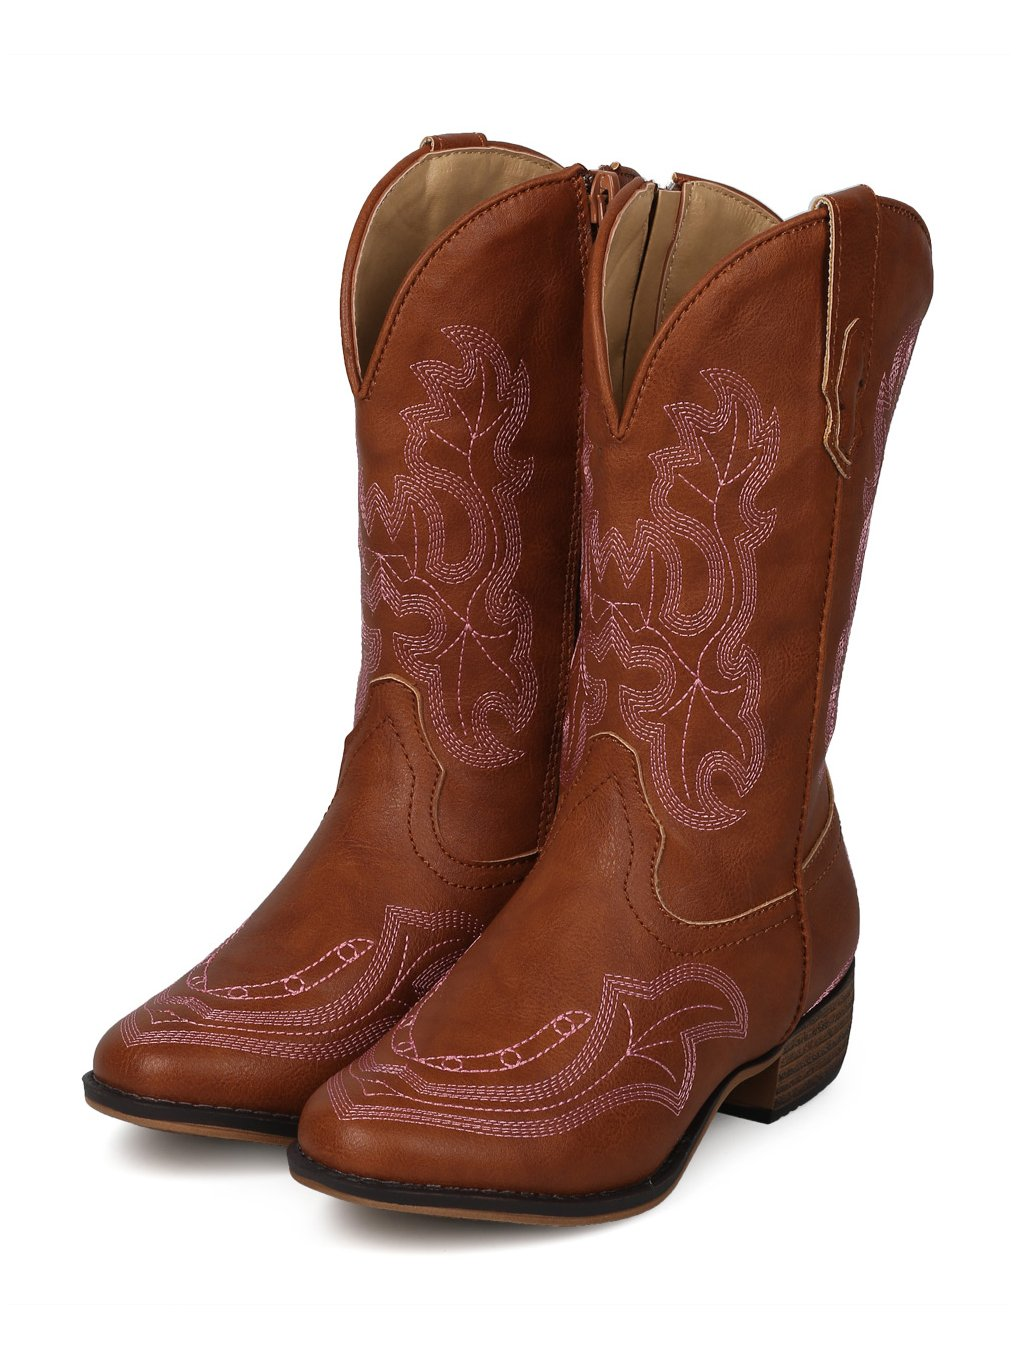 Alrisco Girls Leatherette Embroidered Tall Cowboy Boot HG02 - Tan Leatherette (Size: Little Kid 1) by Alrisco (Image #4)